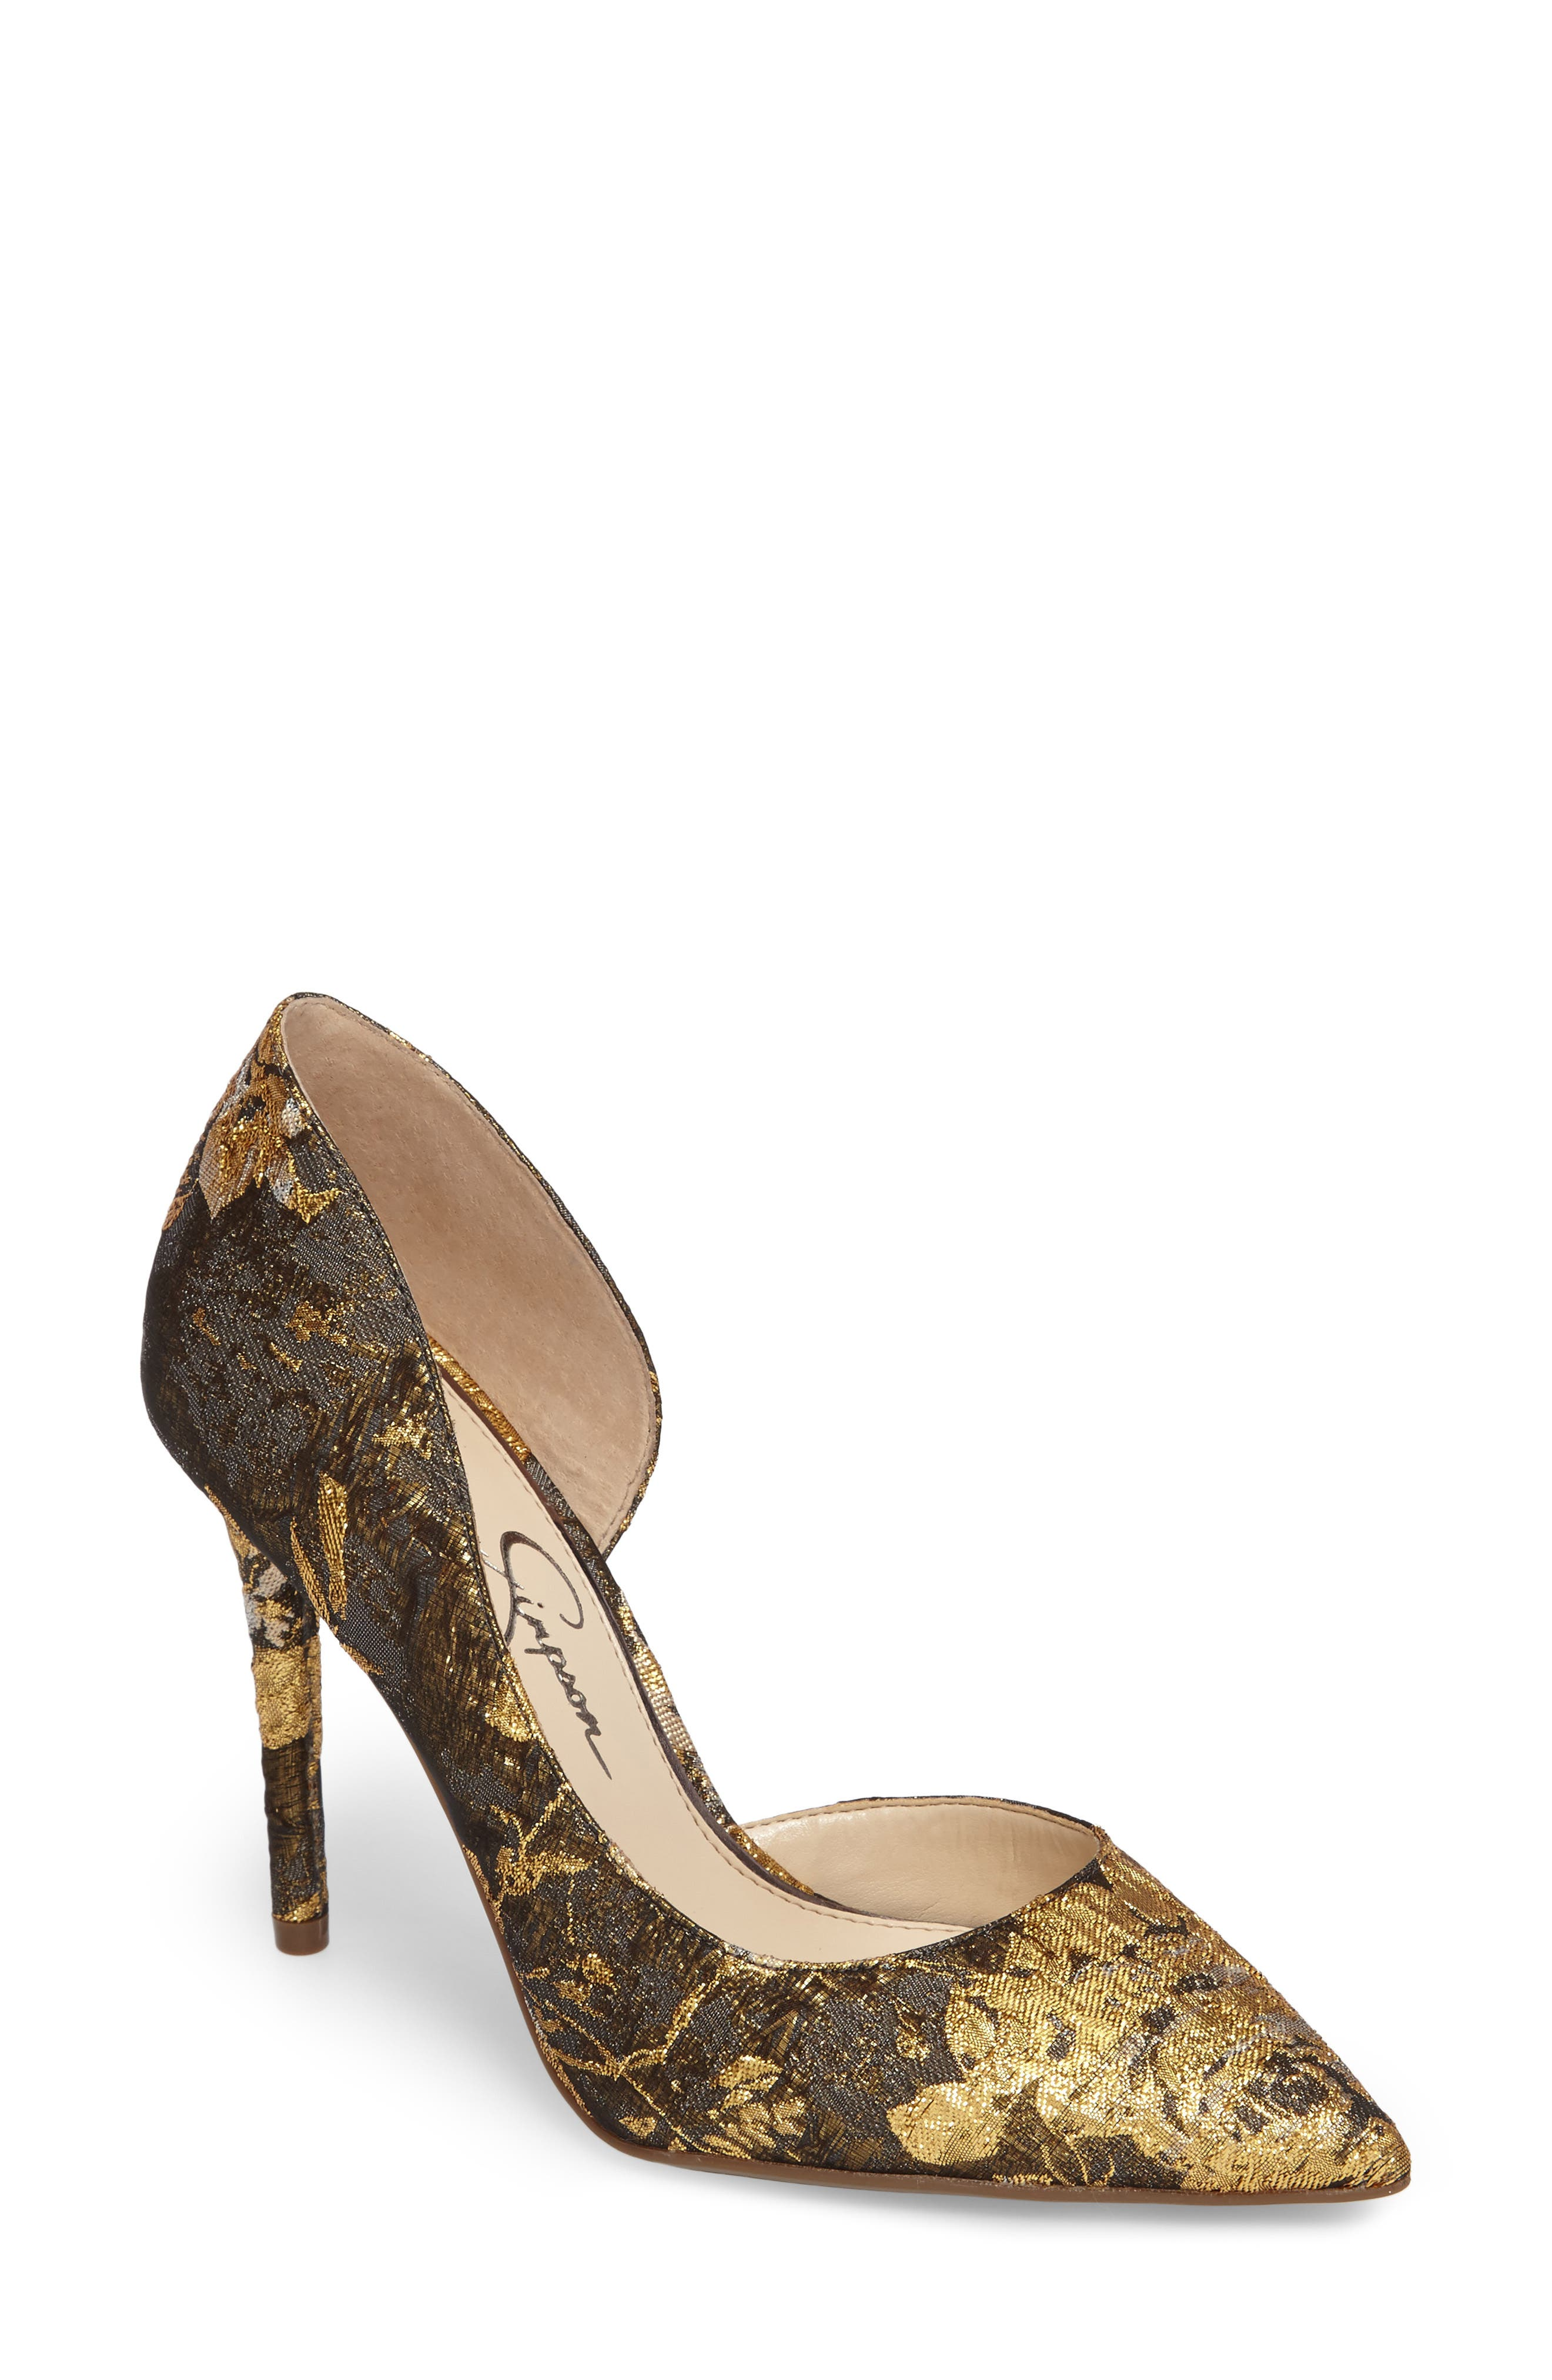 Main Image - Jessica Simpson Lucina Pump (Women)